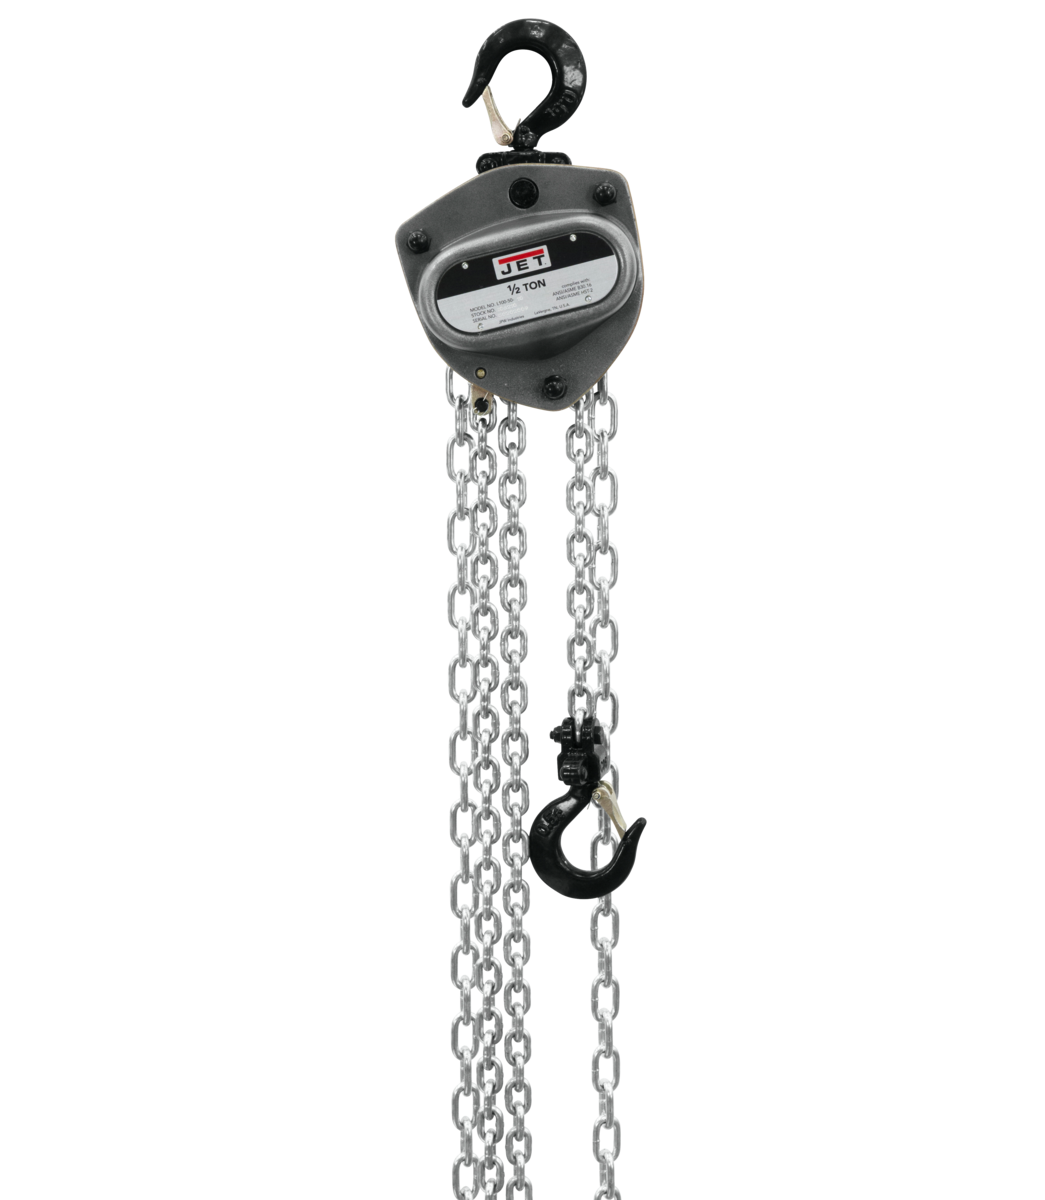 L-100-50WO-10, 1/2-Ton Hand Chain Hoist With 10' Lift & Overload Protection